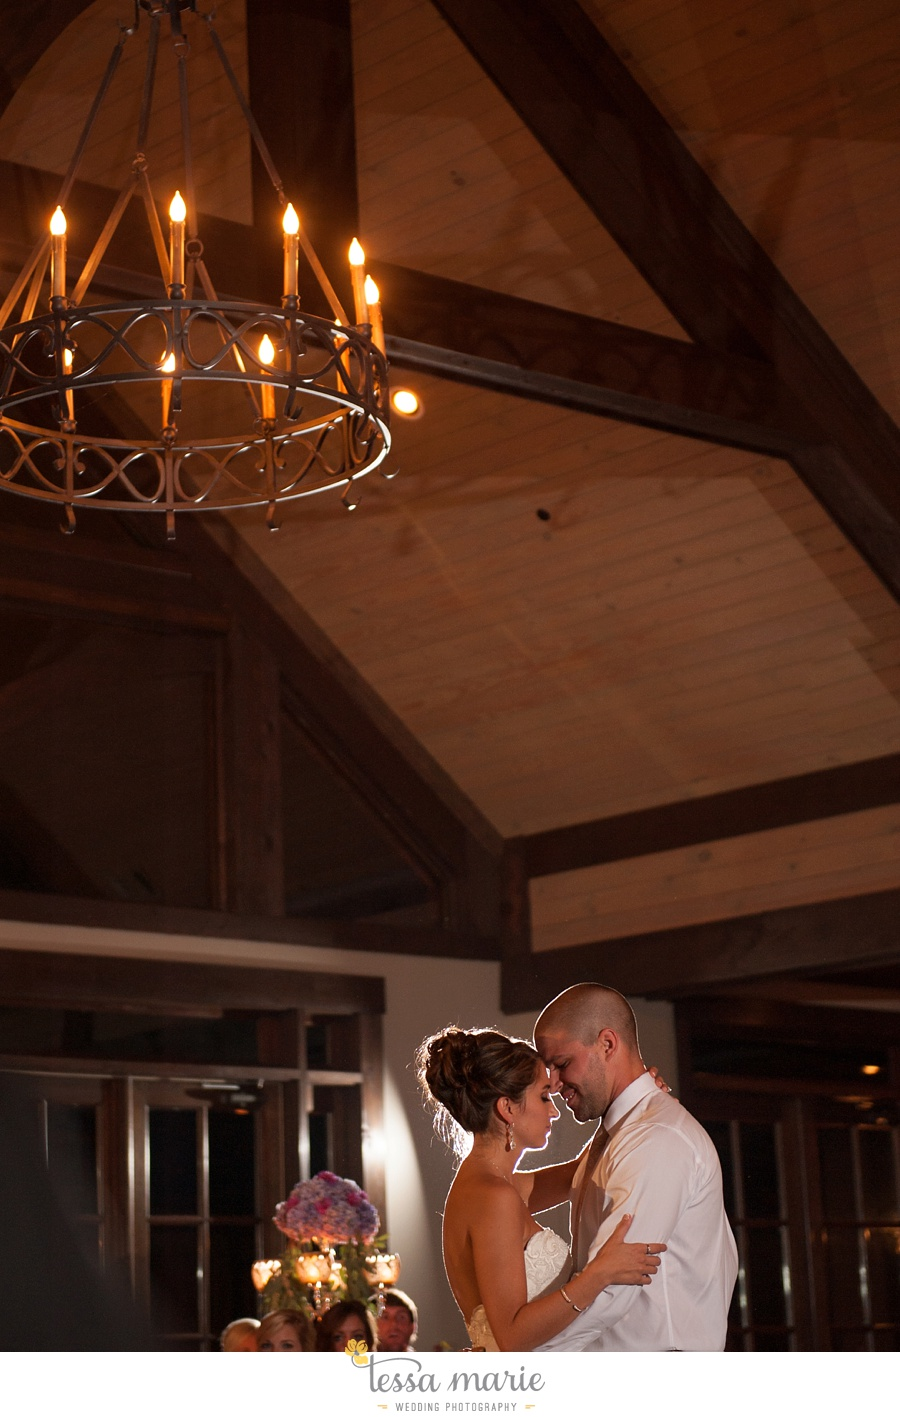 684_foxhall_wedding_outdoor_fall_wedding_andy_beach_hi_note_a_divine_event_tessa_marie_weddings_photography_wedding_pictures